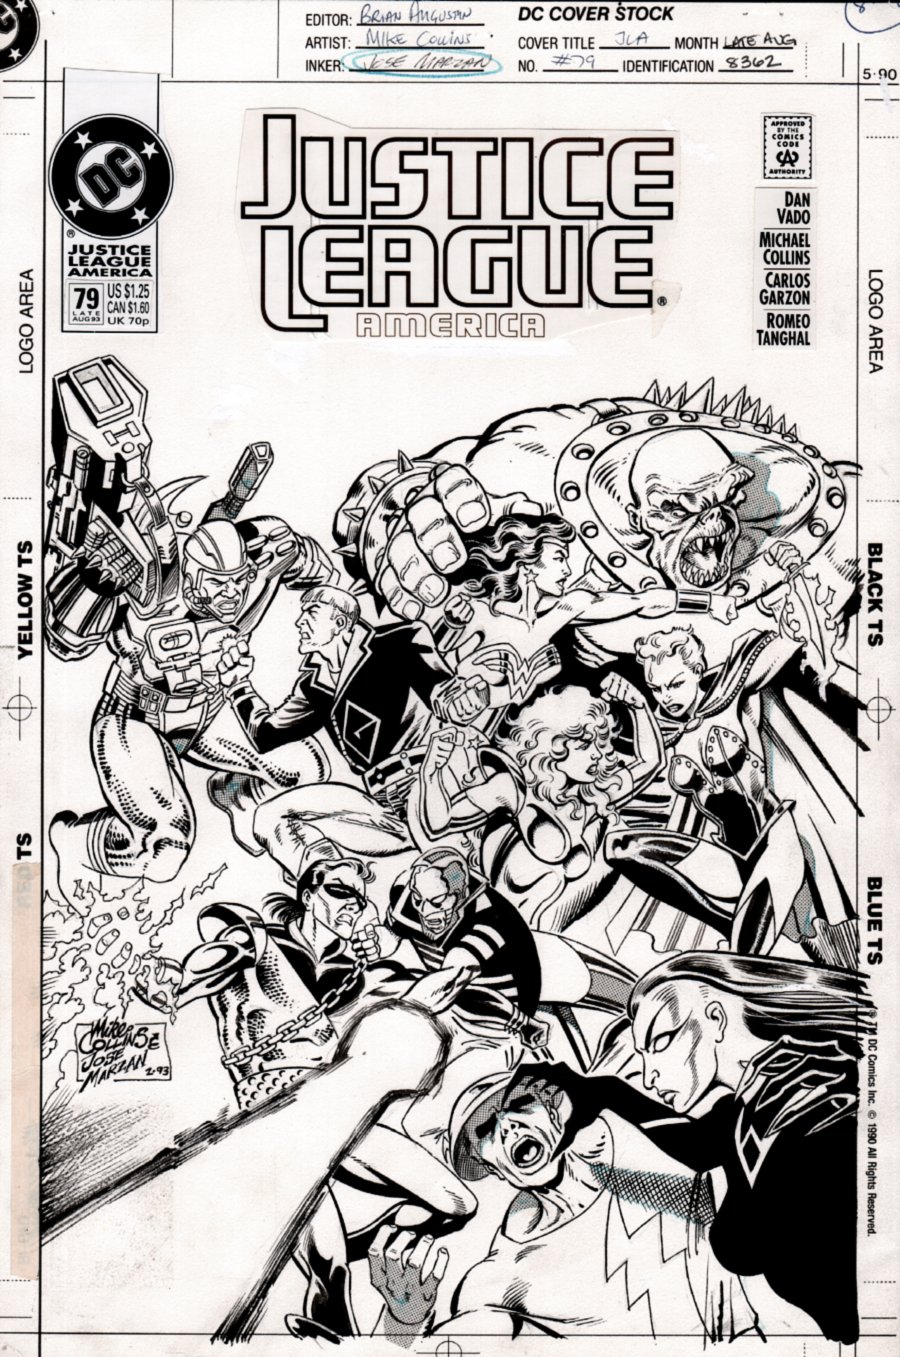 Justice League America #79 Cover (ENTIRE TEAM BATTLE!) 1993